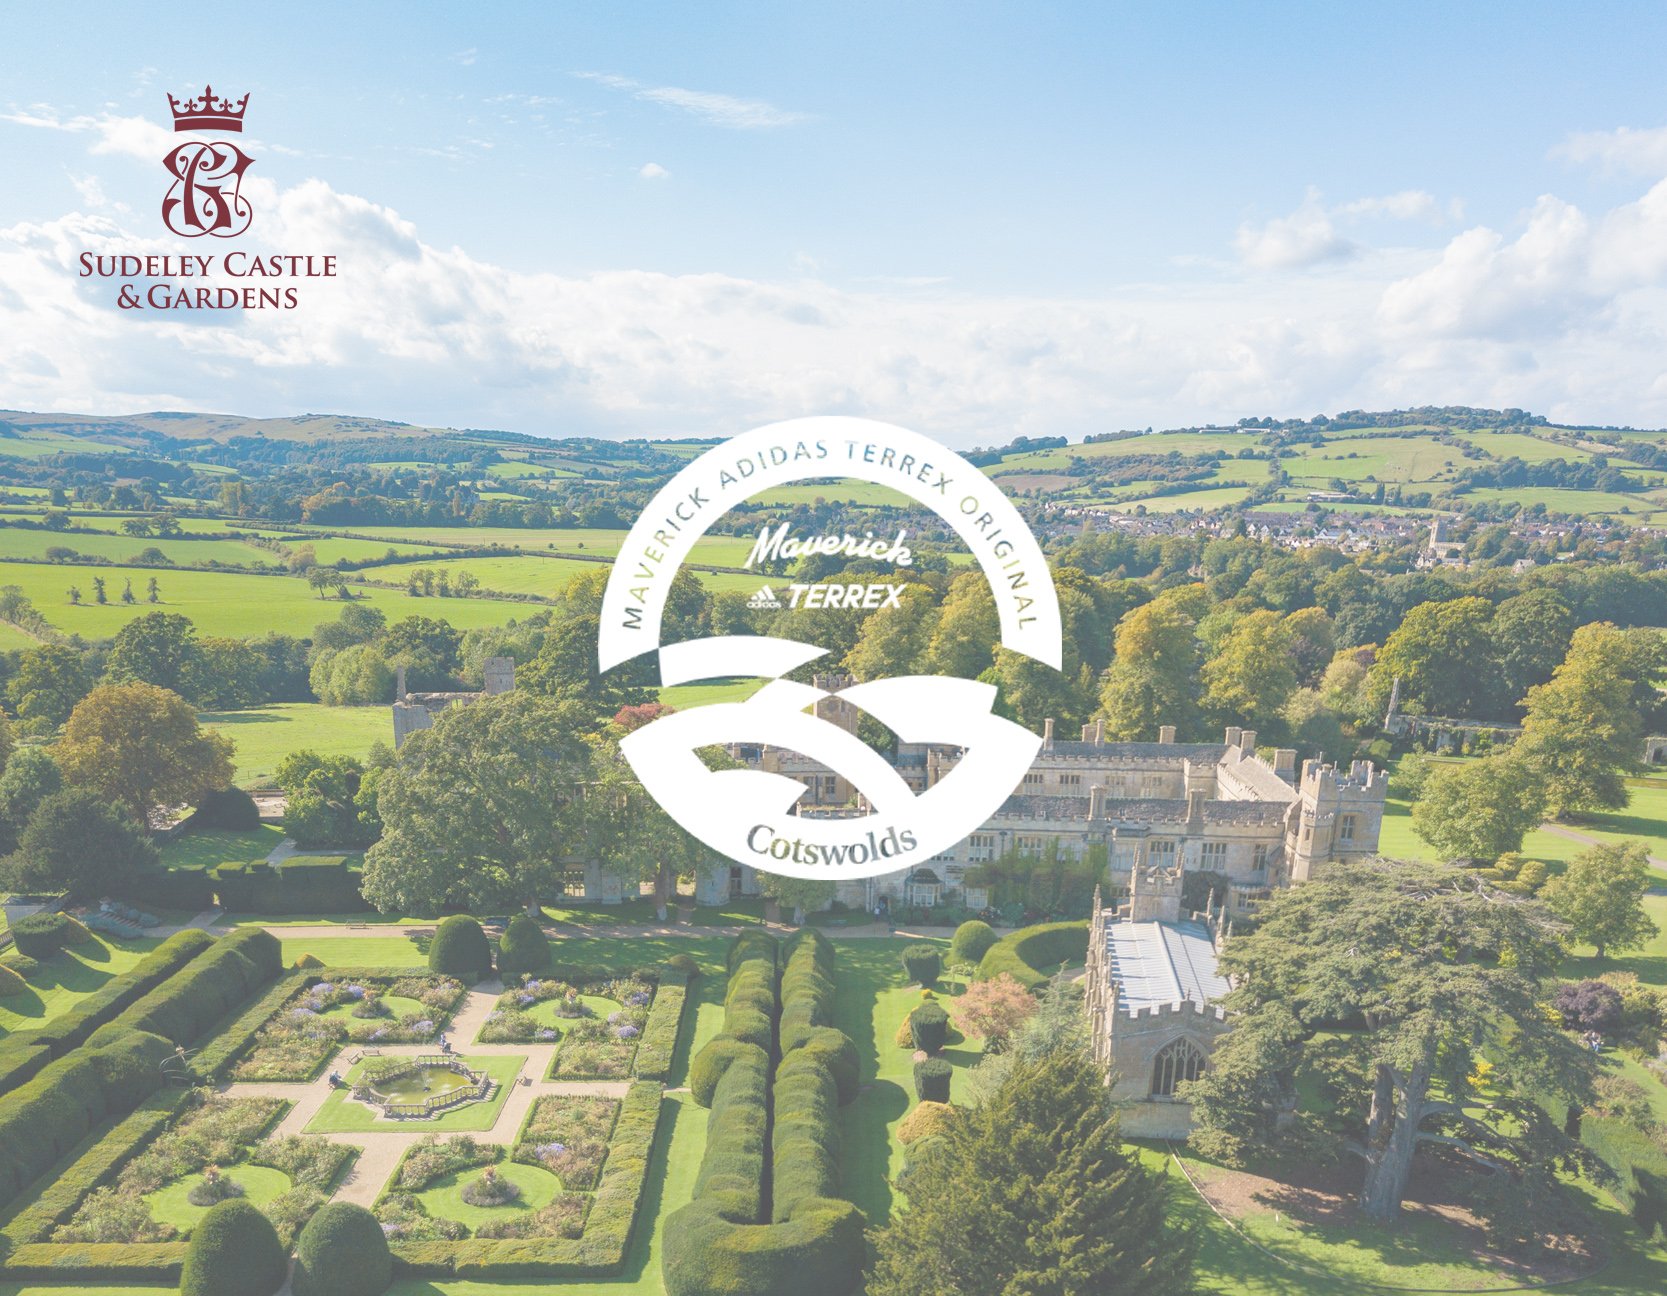 Maverick Trail Run at Sudeley Castle